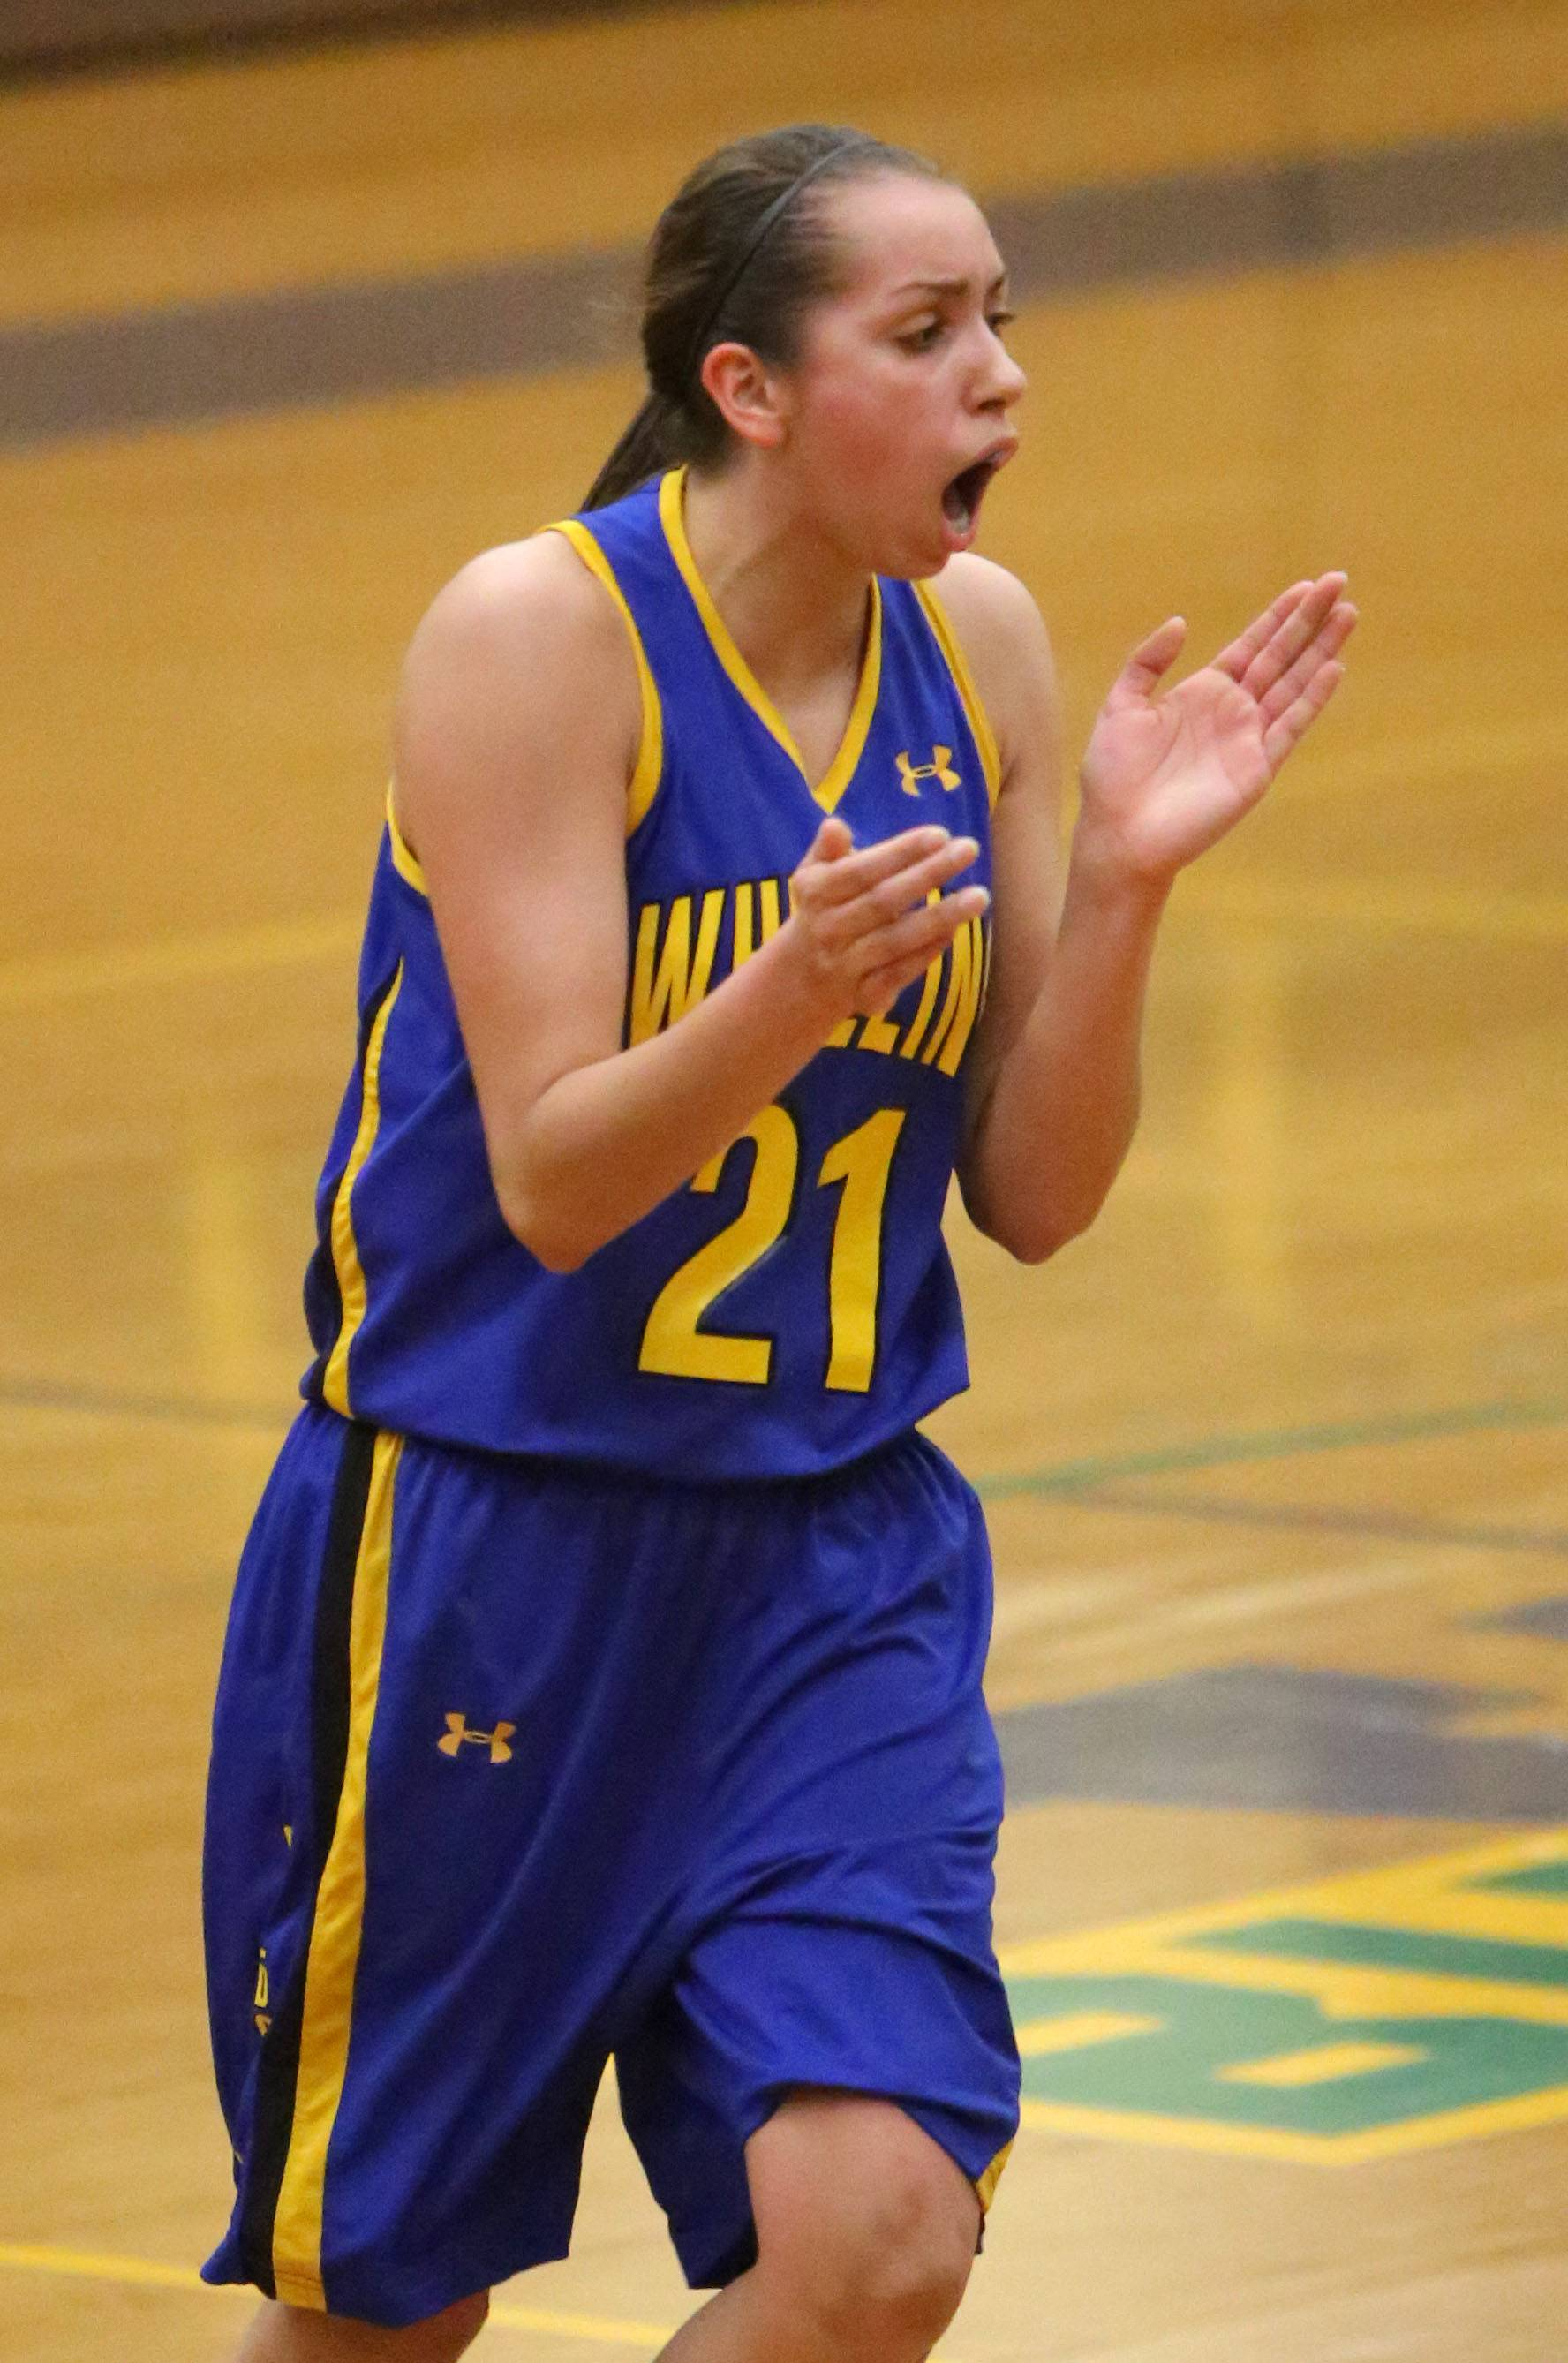 Wheeling's Deanna Kuzmanic cheers during a time out.